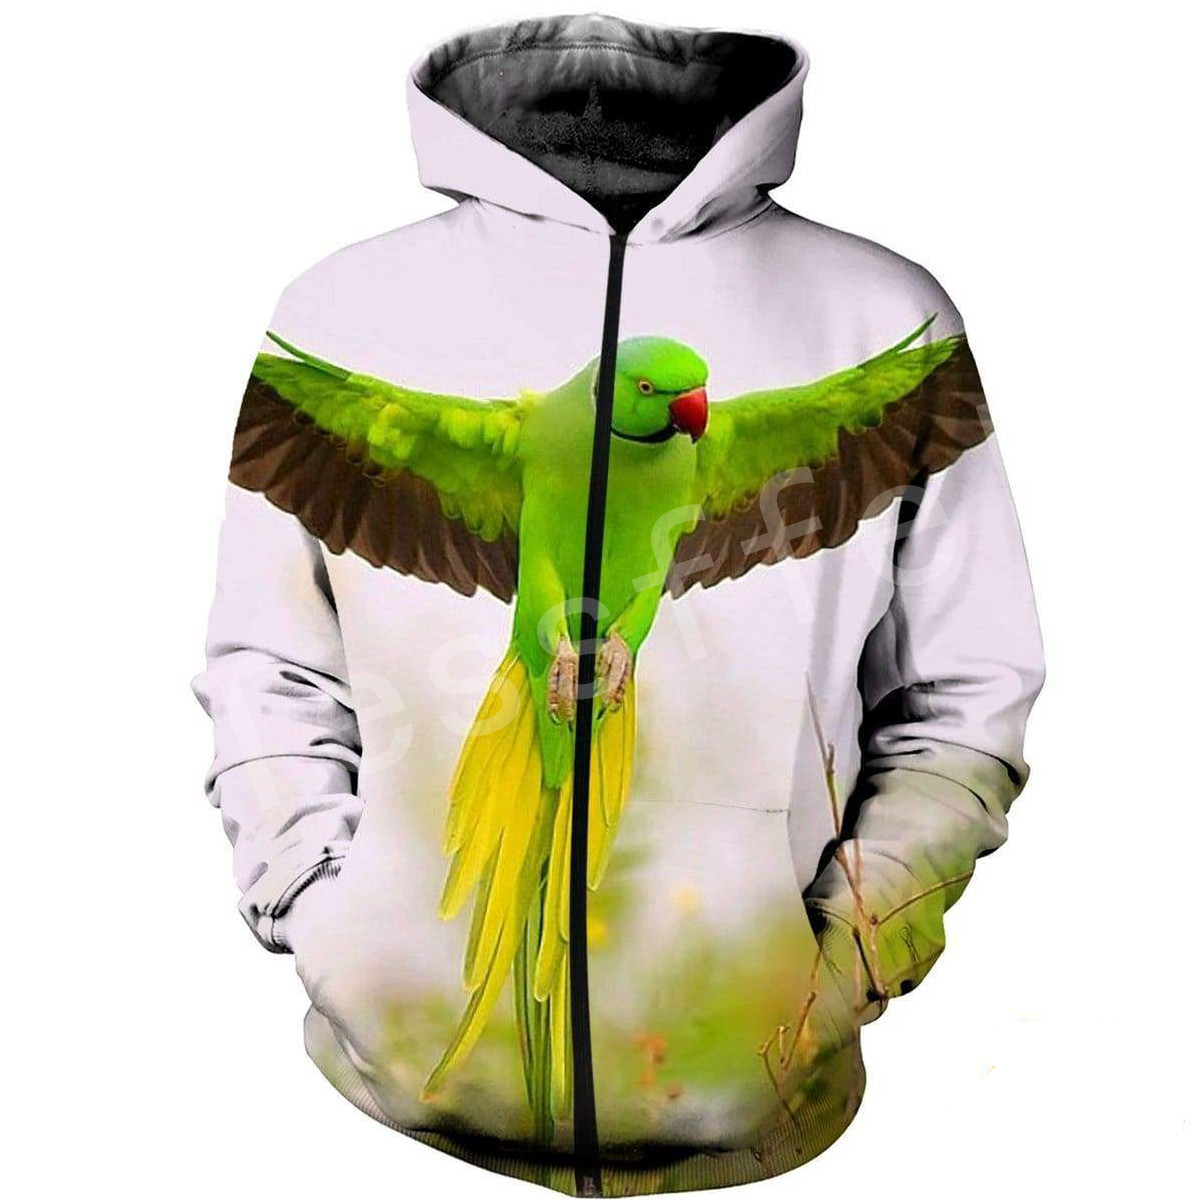 Tessffel Animal Parrot Tracksuit MenWomen HipHop 3Dfull Printed Sweatshirts Hoodie shirts Jacket Harajuku Casual colorful Style4 in Hoodies amp Sweatshirts from Men 39 s Clothing